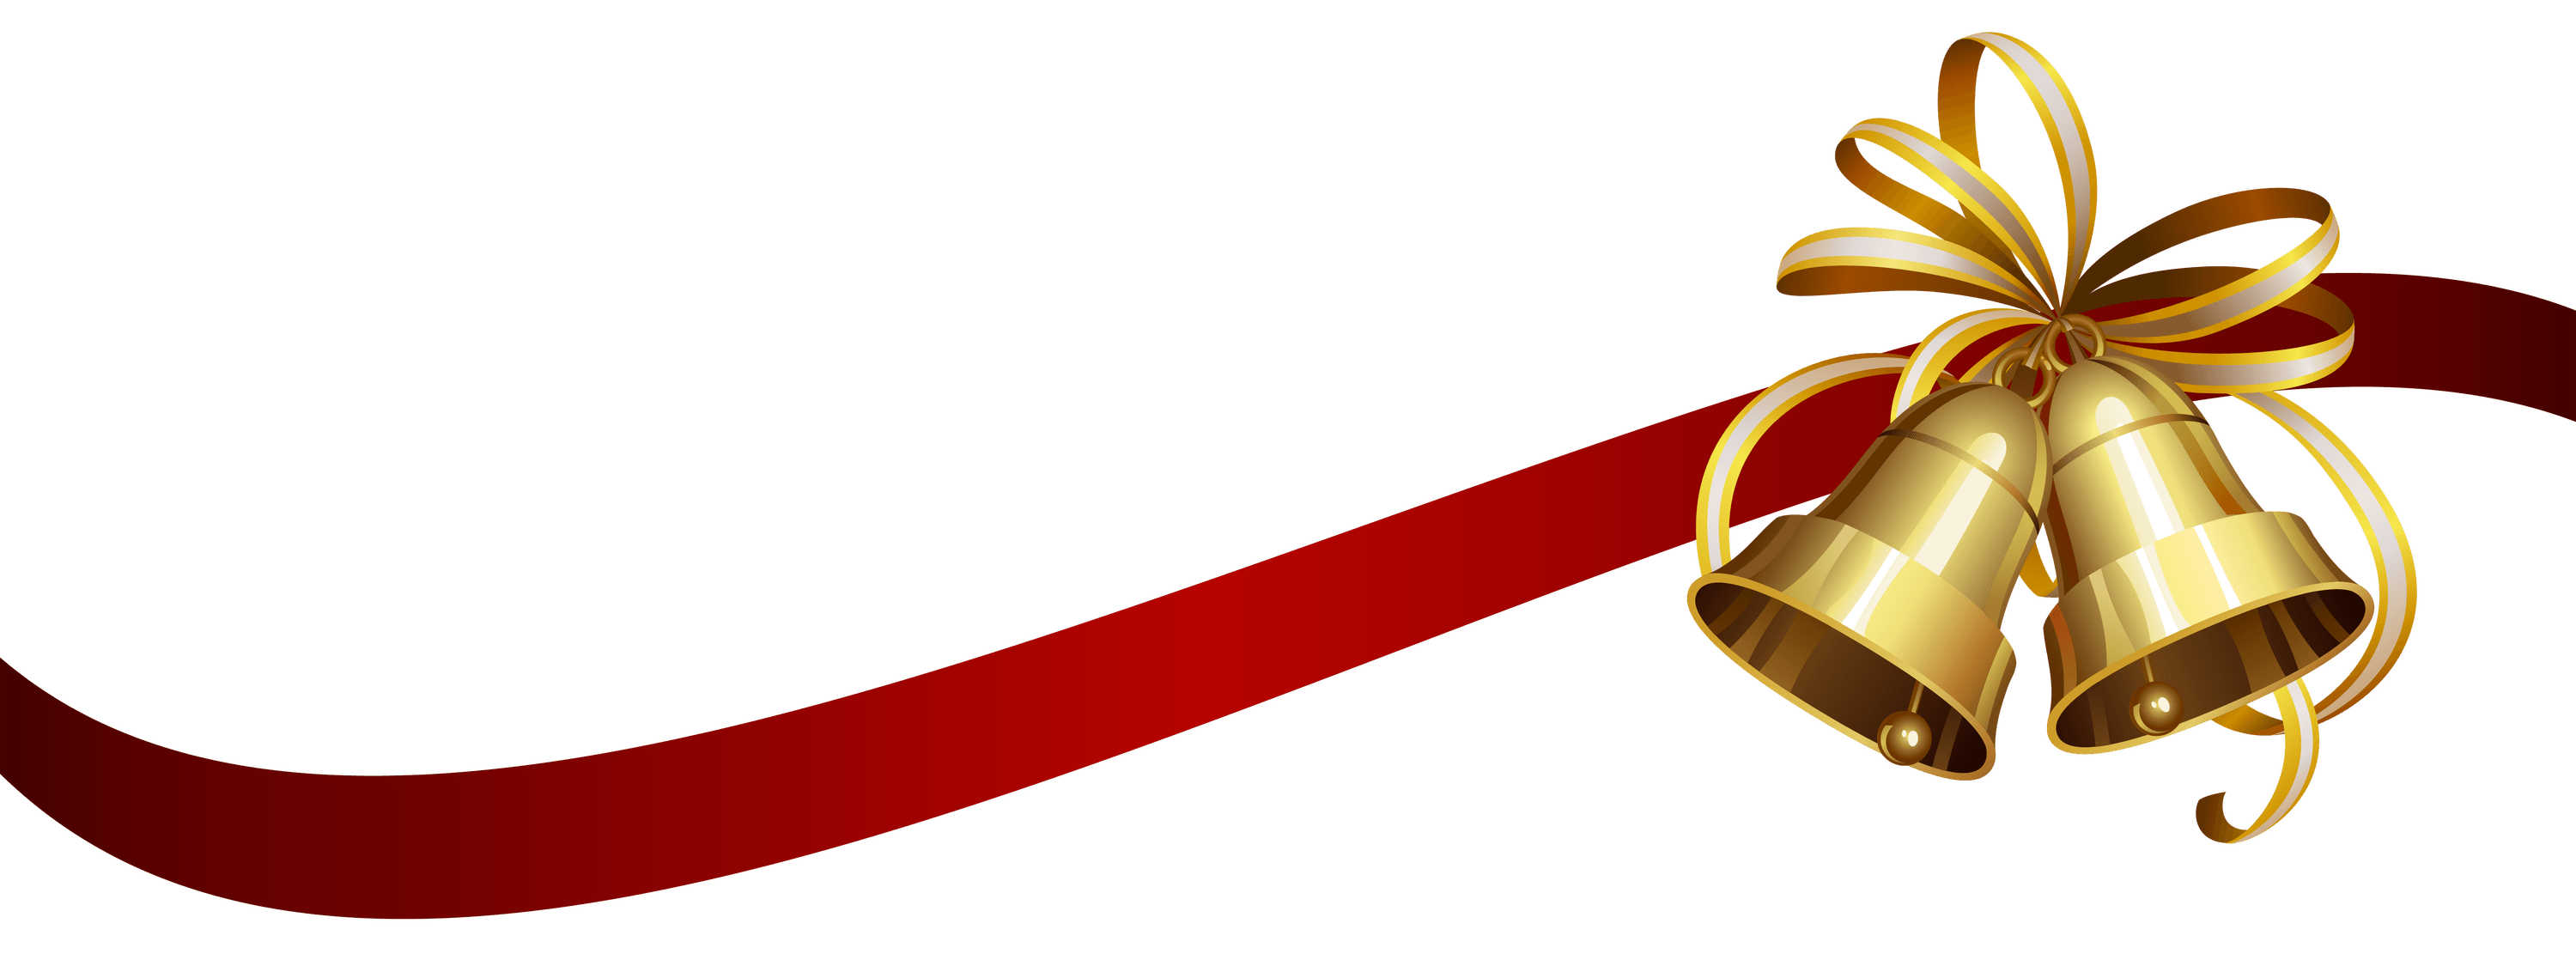 3000x1125 Christmas Ribbon And Bells Transparent Png